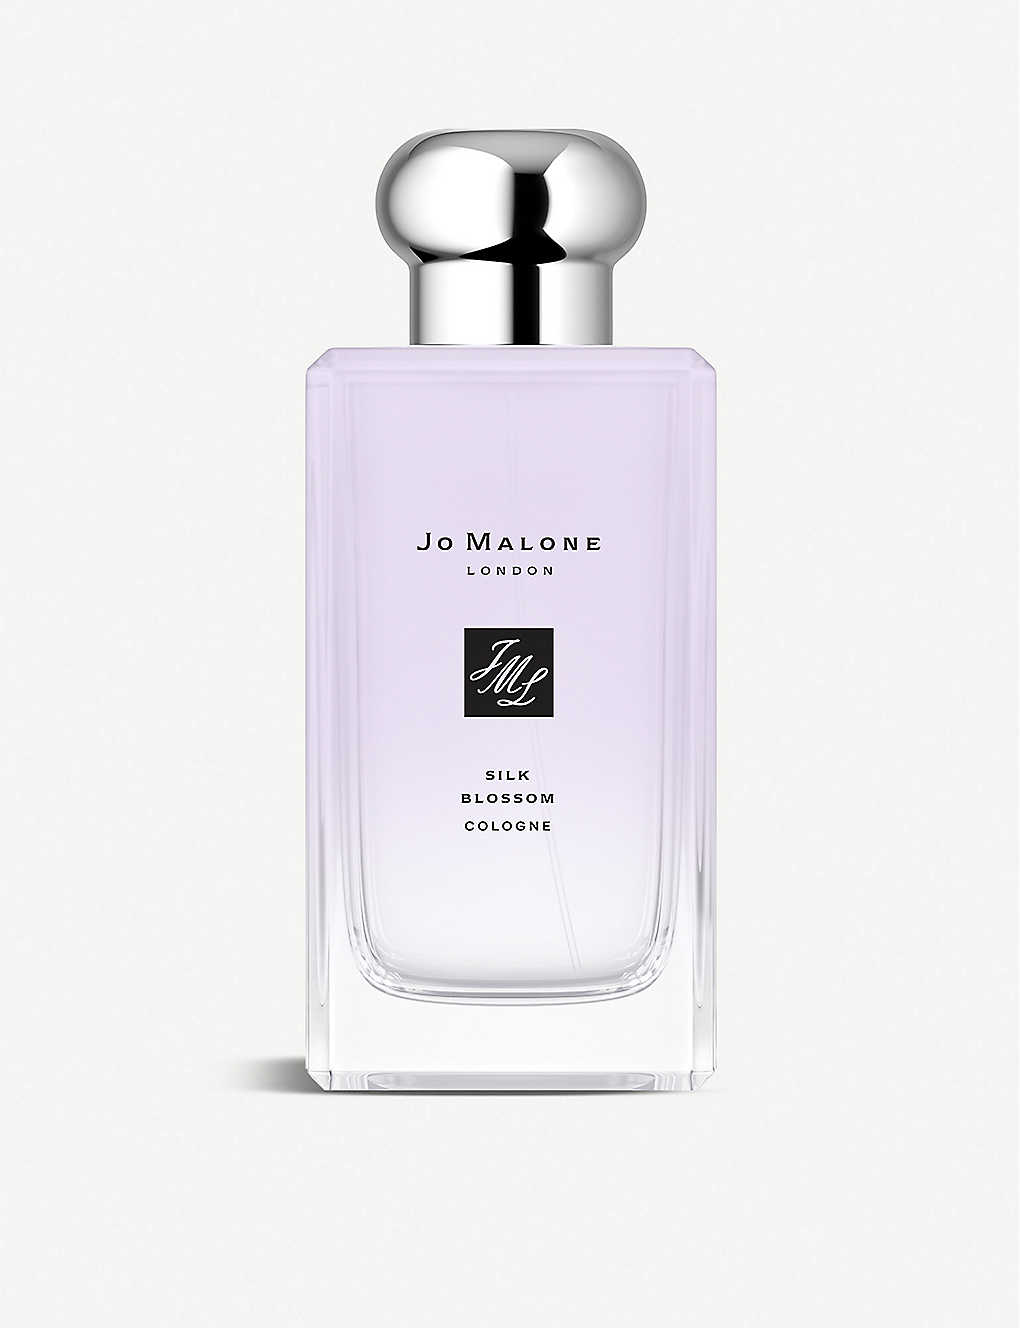 JO MALONE LONDON: Silk Blossom cologne 100ml